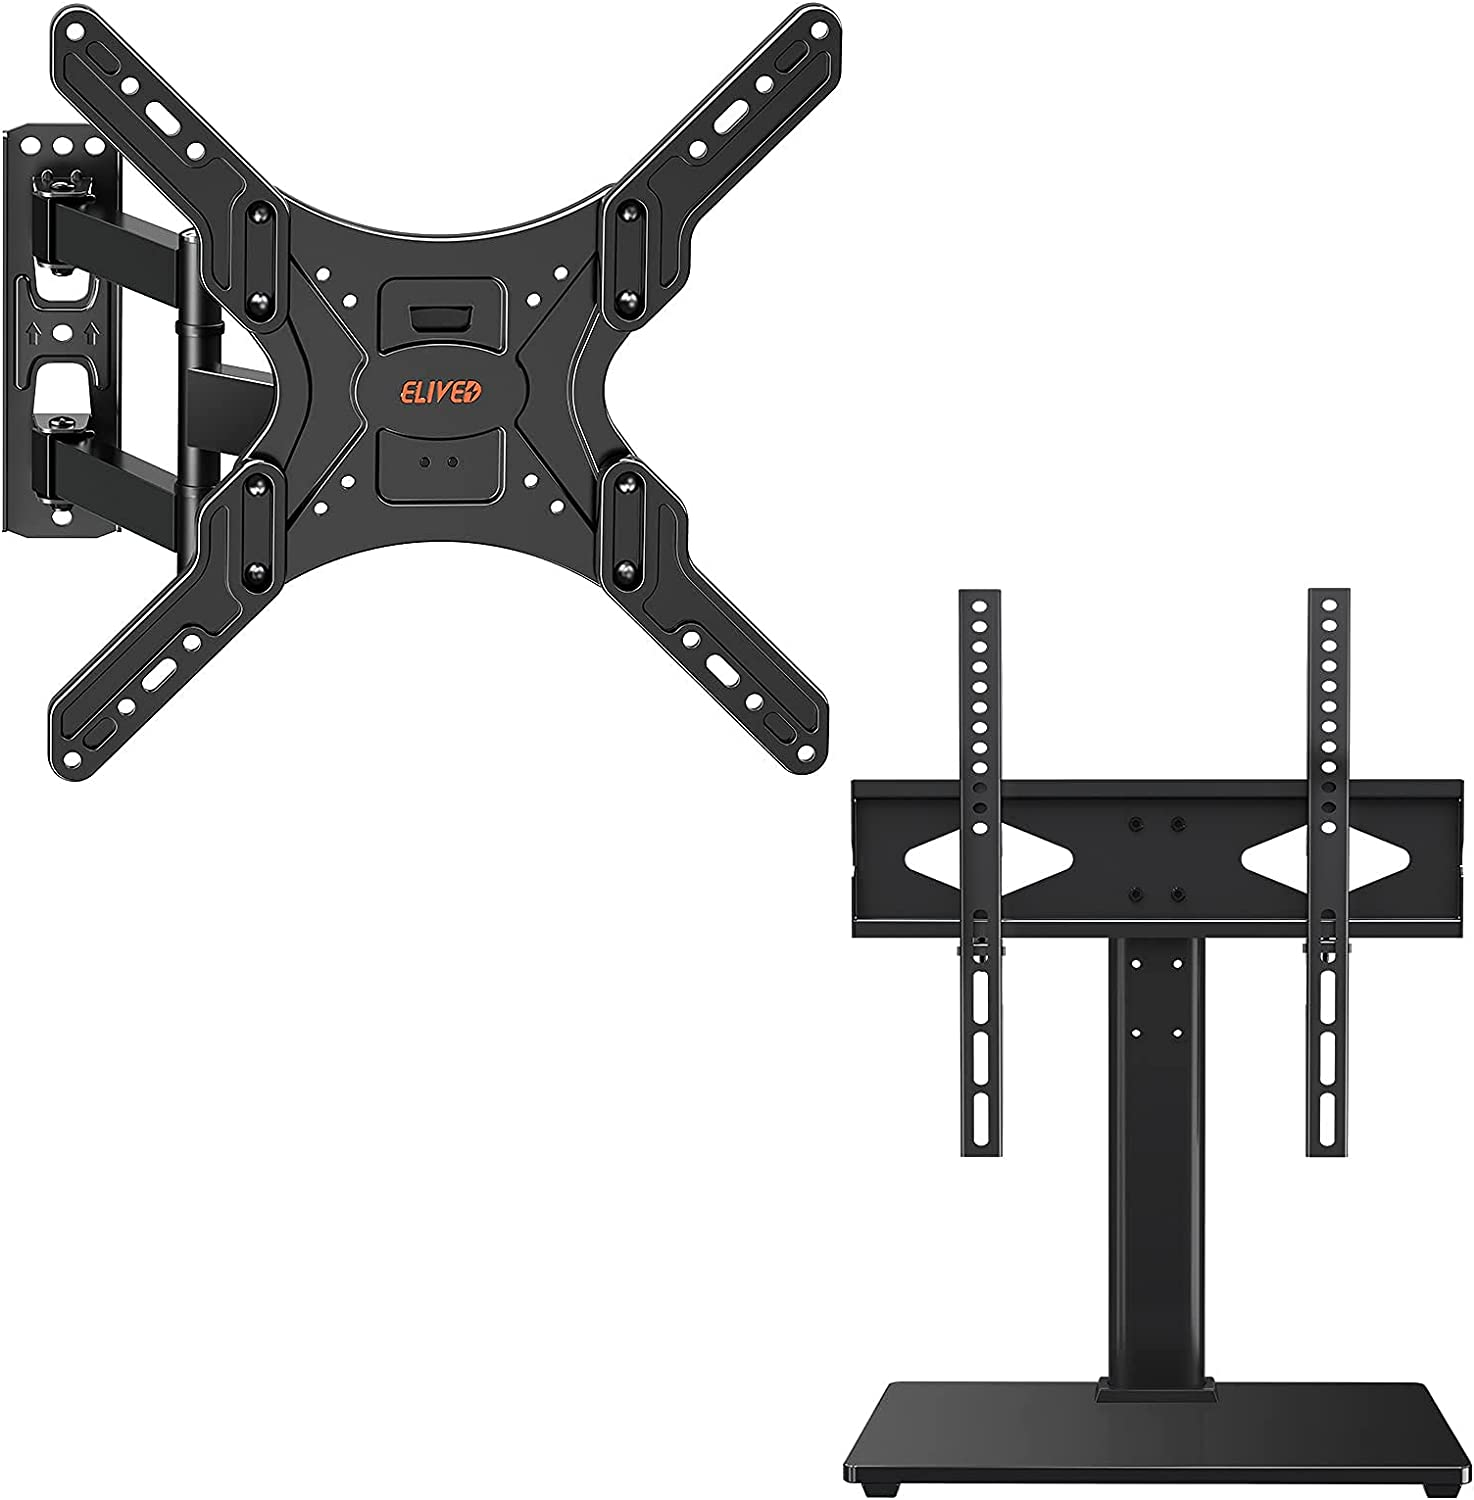 YD1003 TV Wall Mount for 26-55 Inch Flat Ranking TOP17 VESA 40 Max Curved Super special price TVs